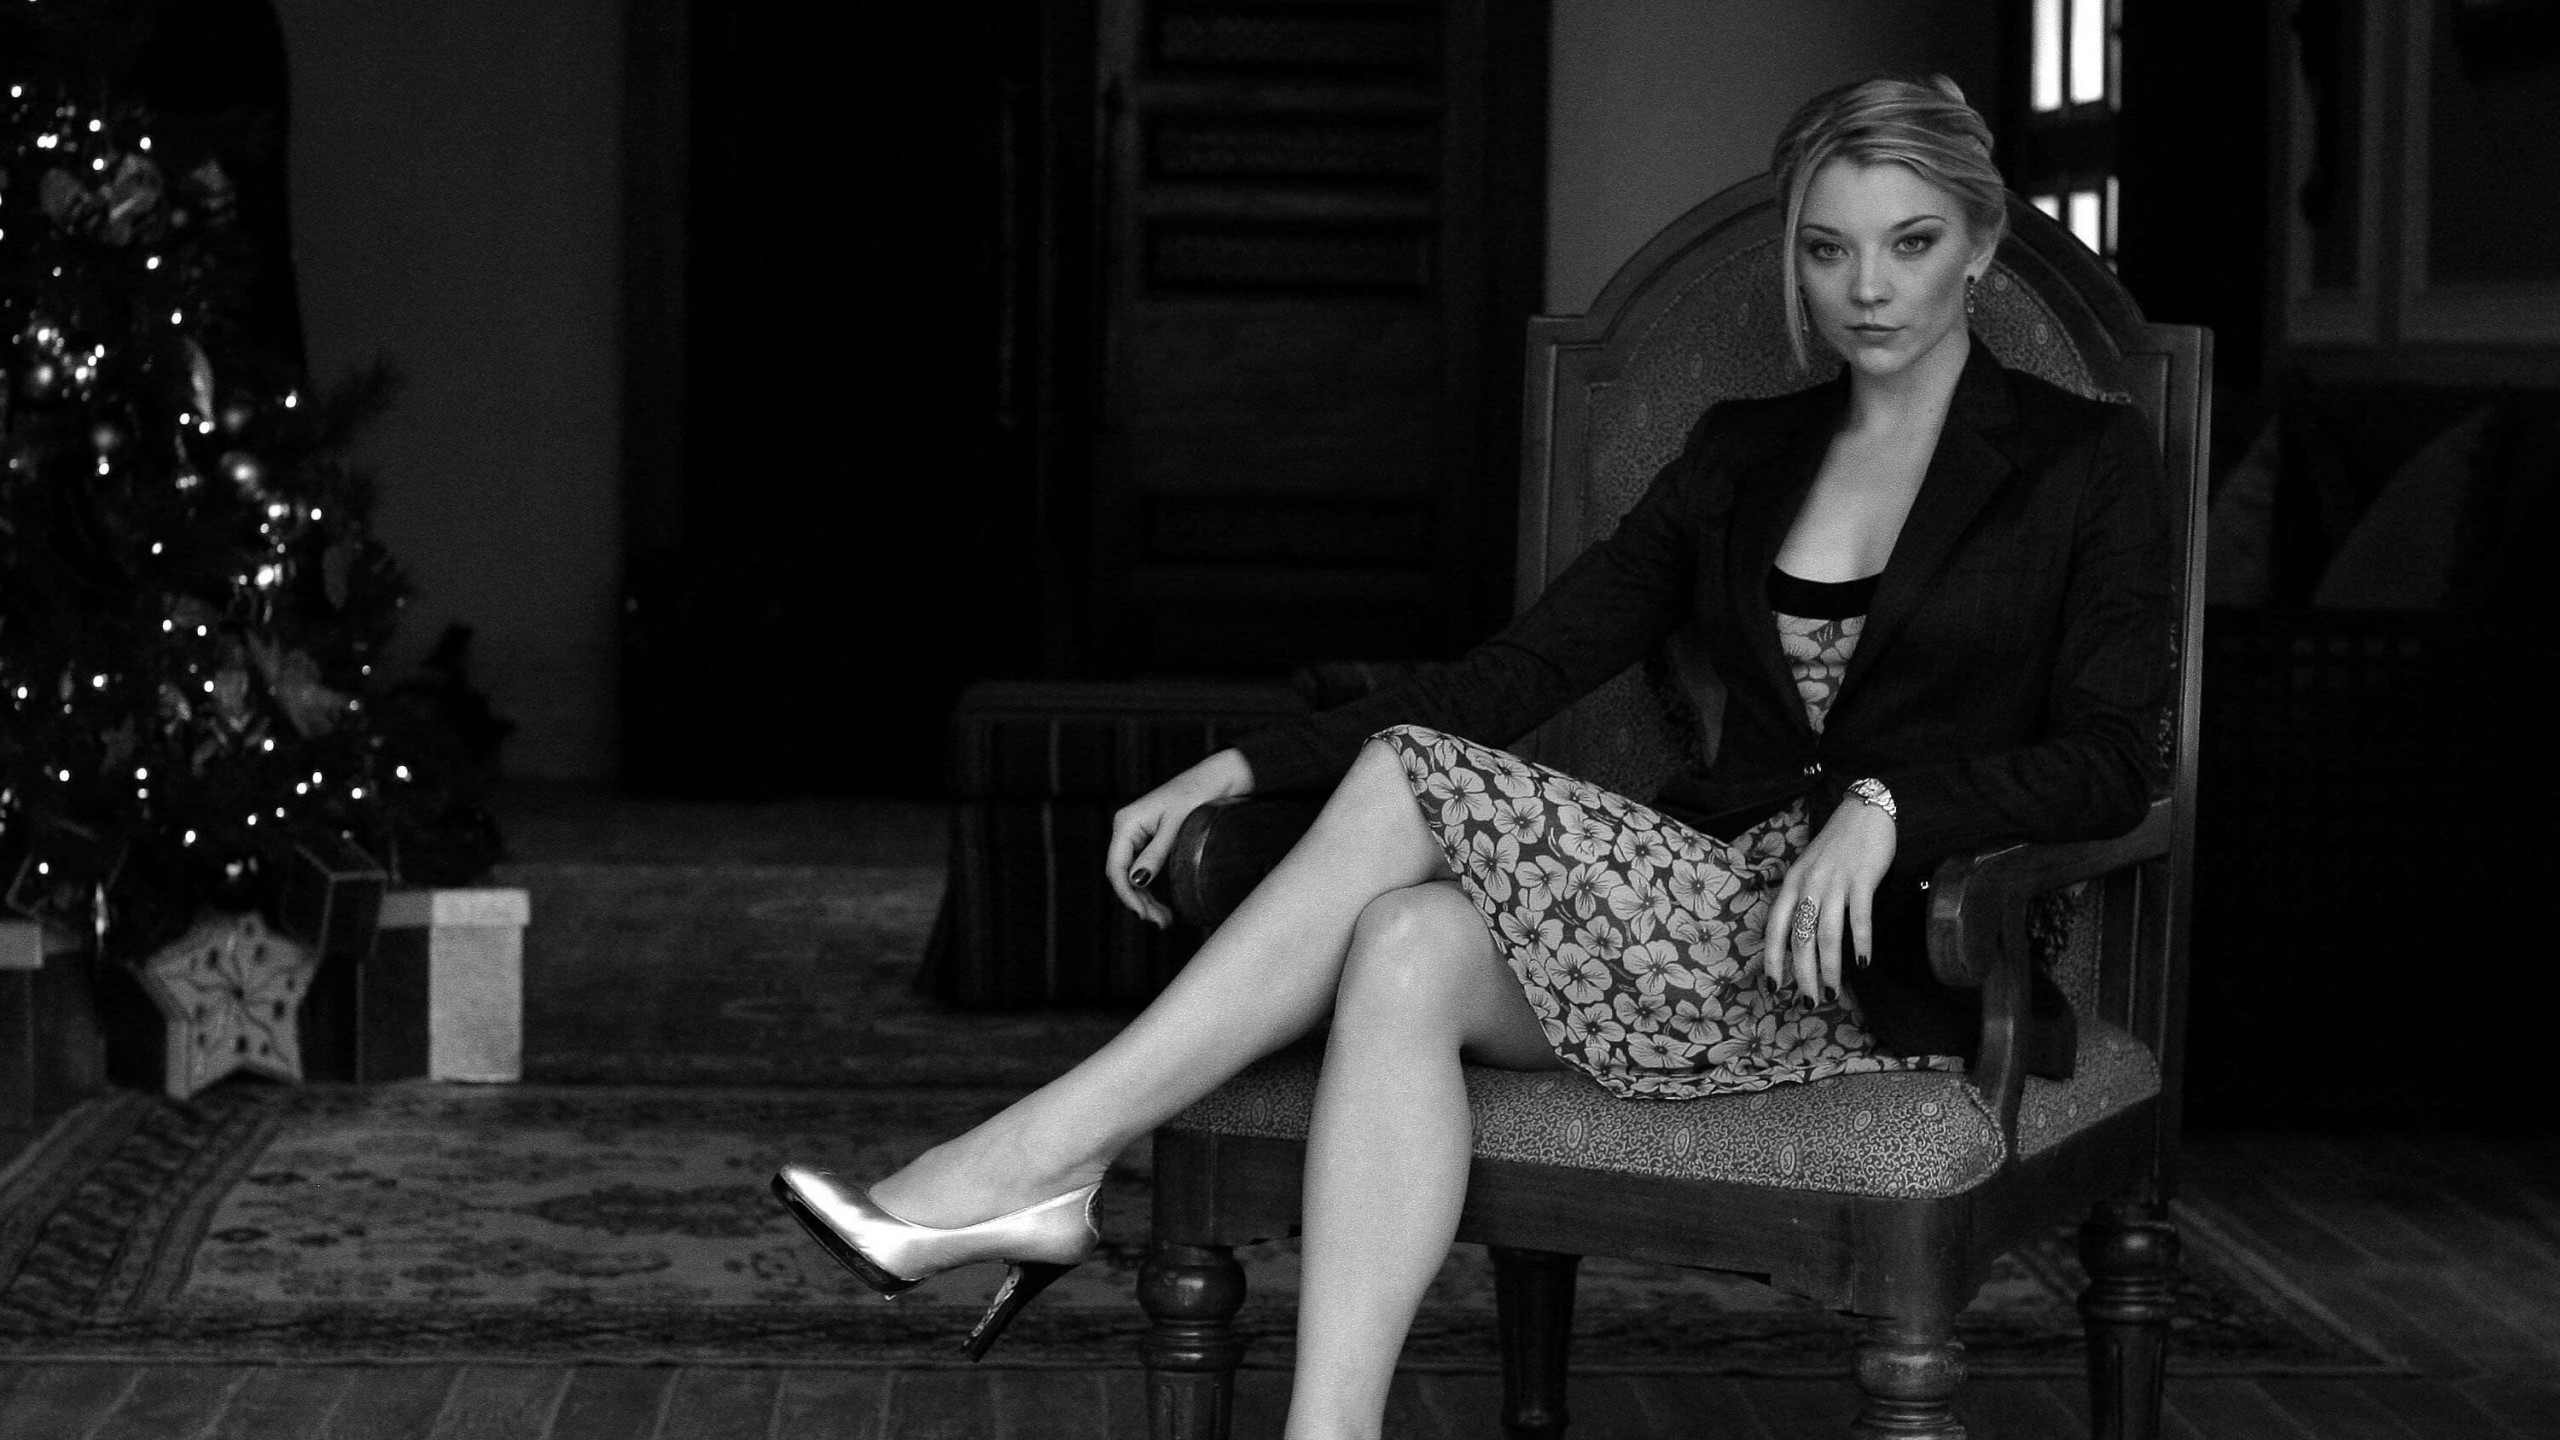 Natalie Dormer in Black & White Wallpaper for Desktop 2560x1440